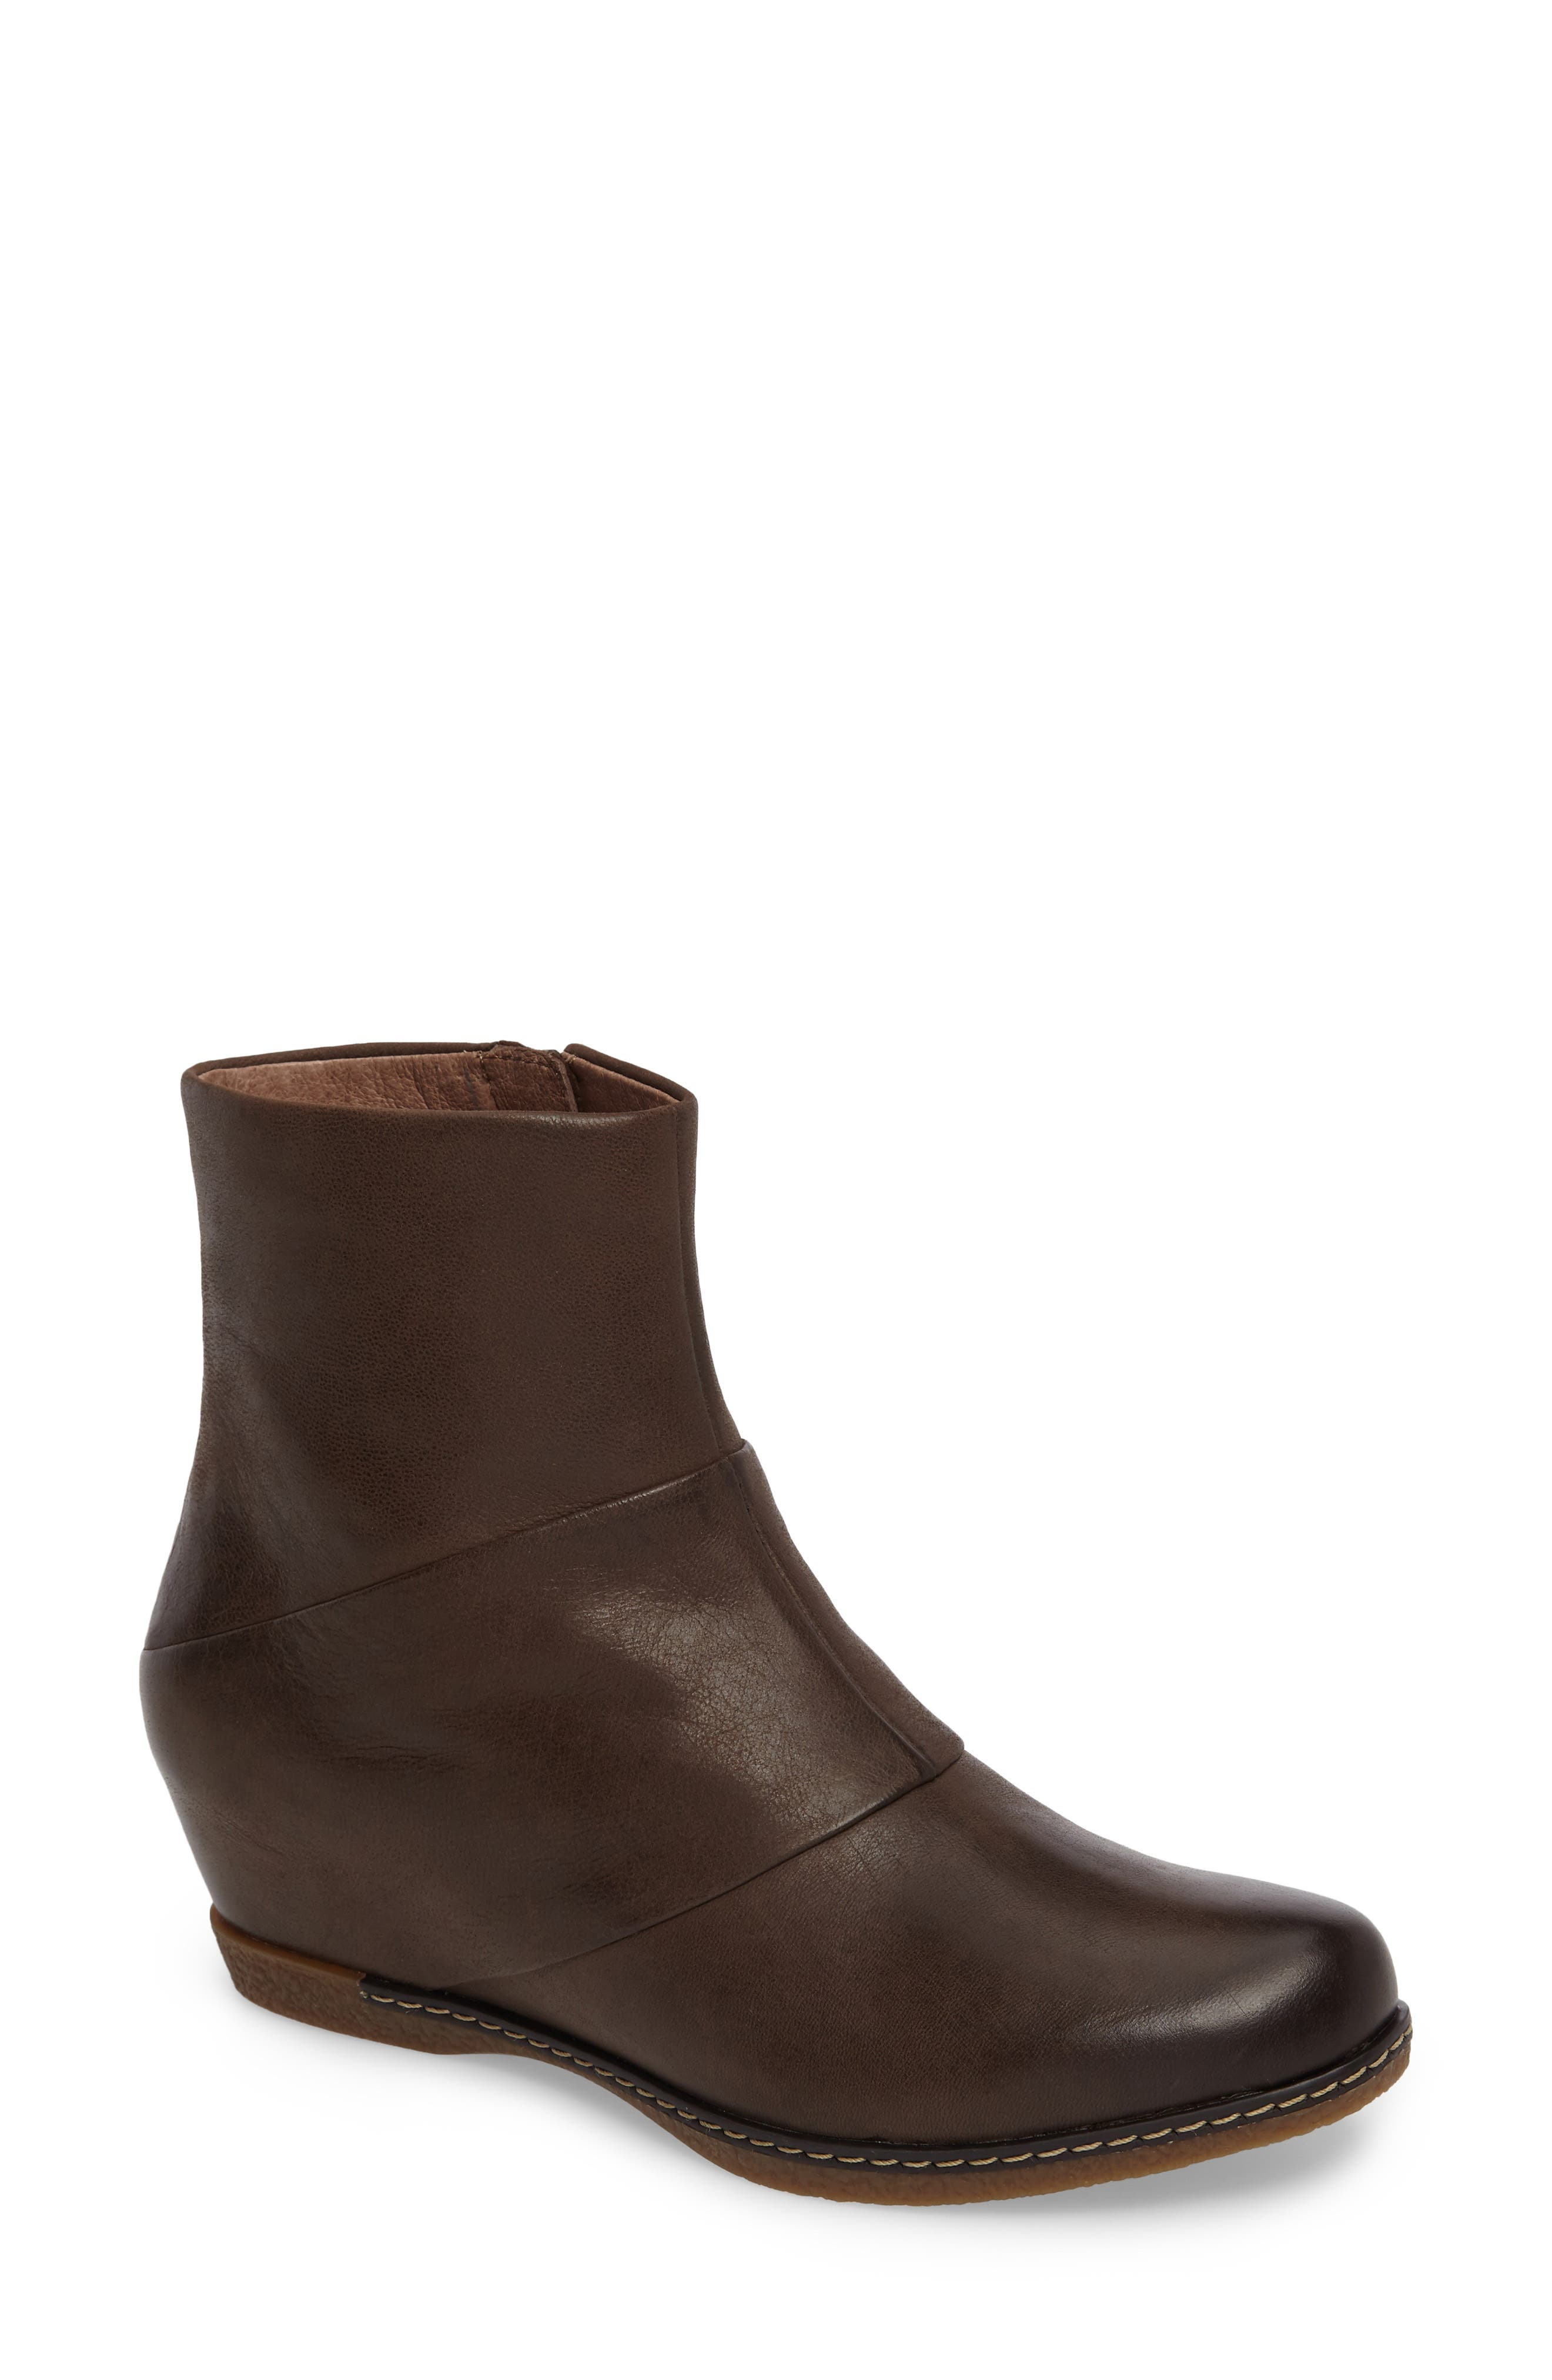 Dansko Lettie Wedge Bootie (Women)